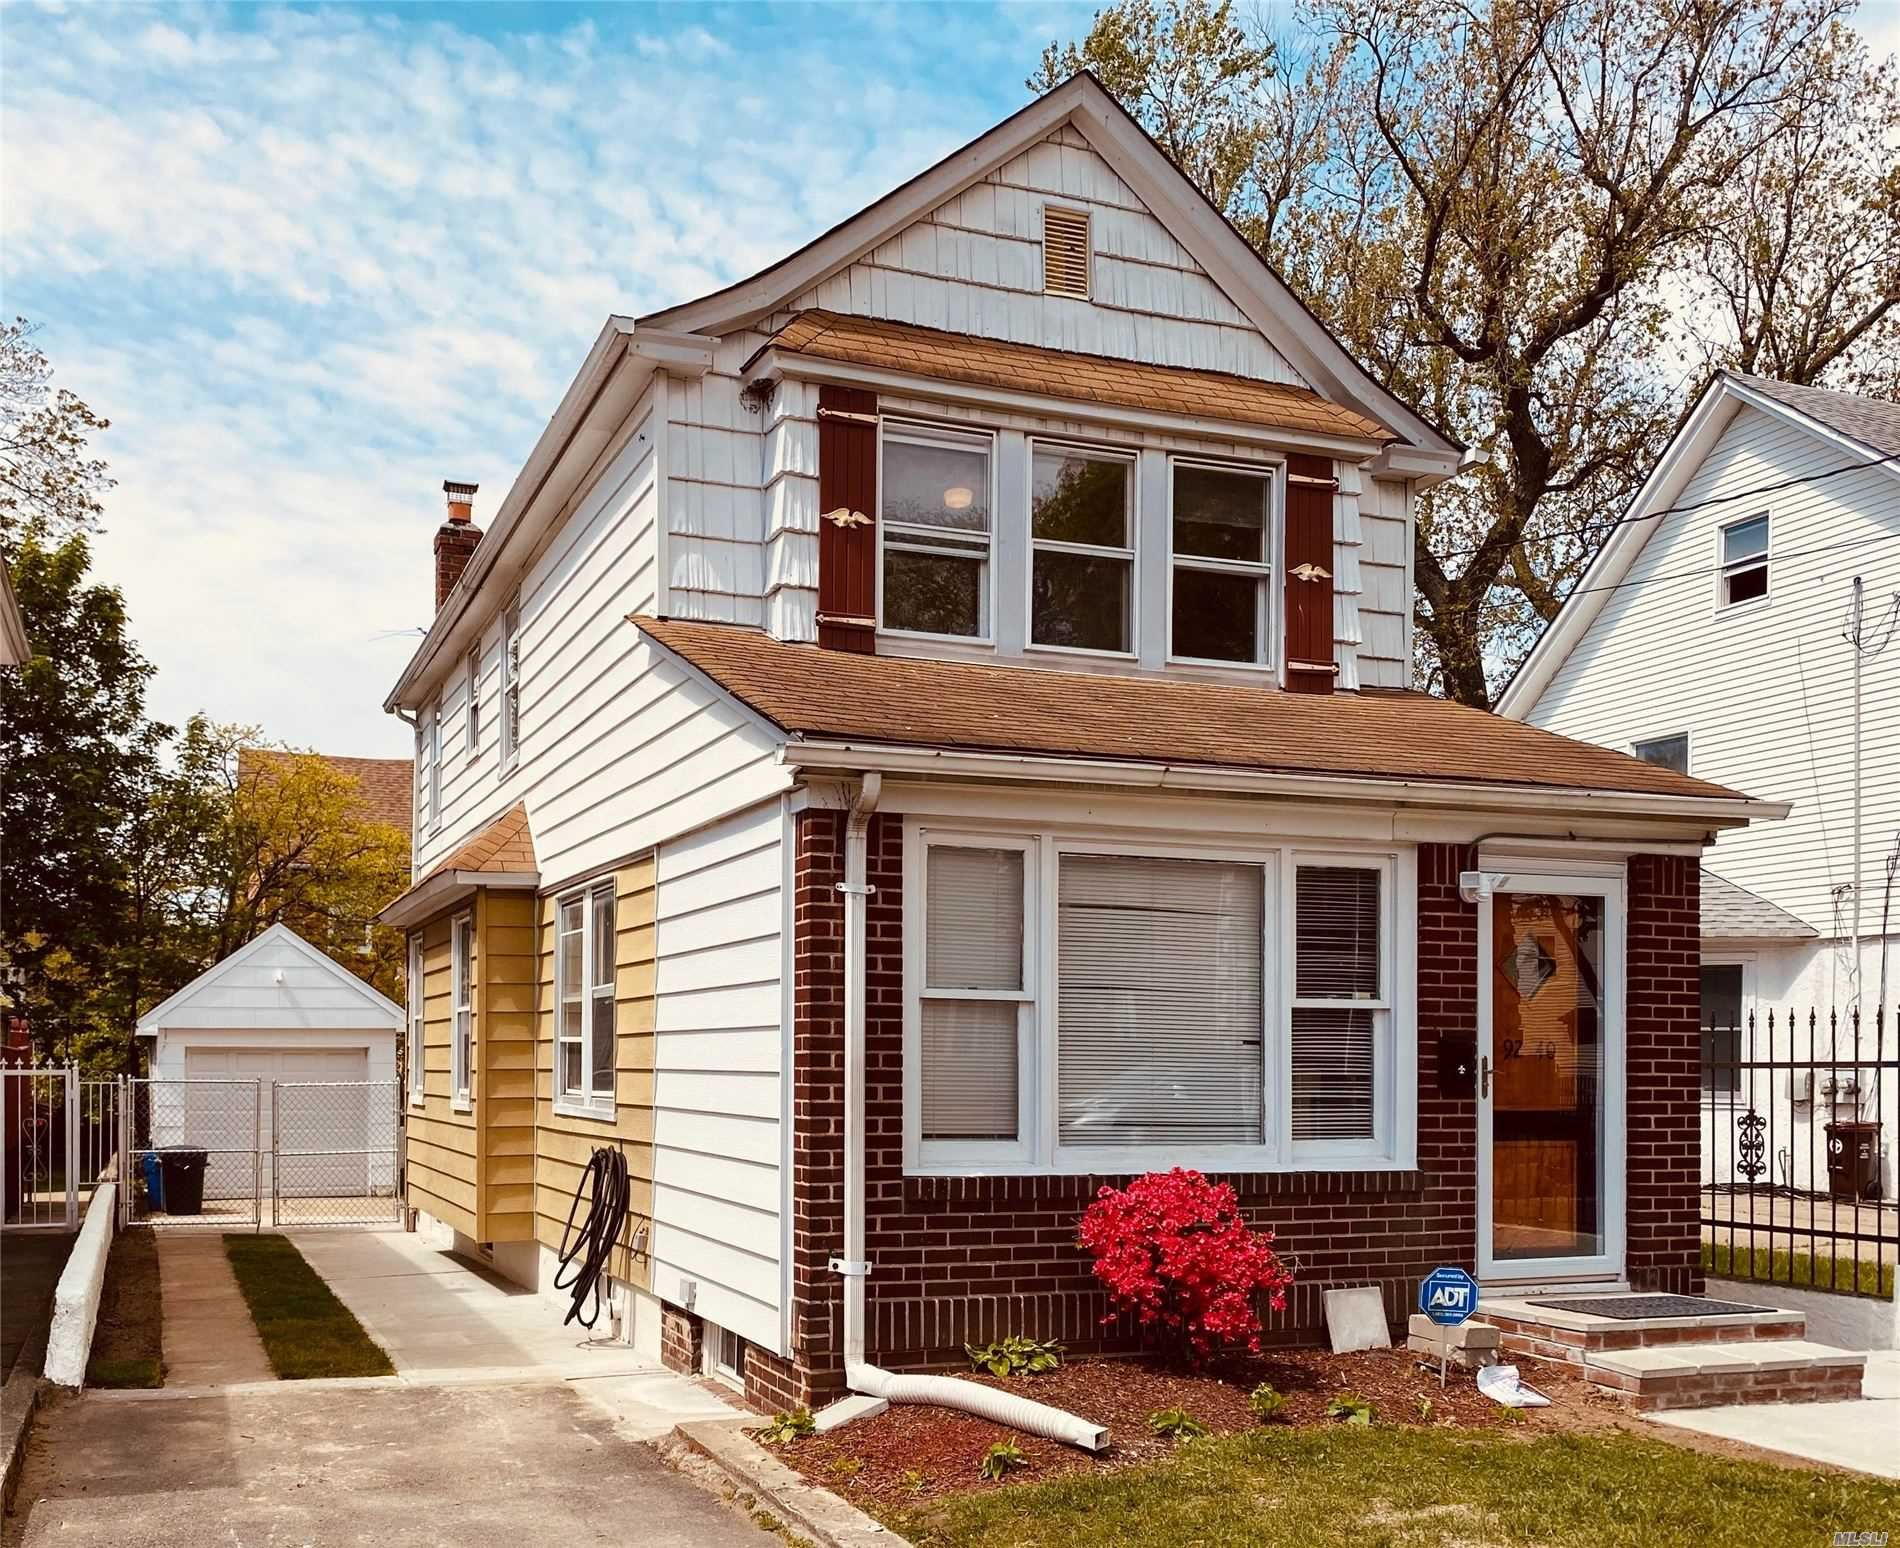 92-40 218th Place, Queens Village, NY 11428 - MLS#: 3215362